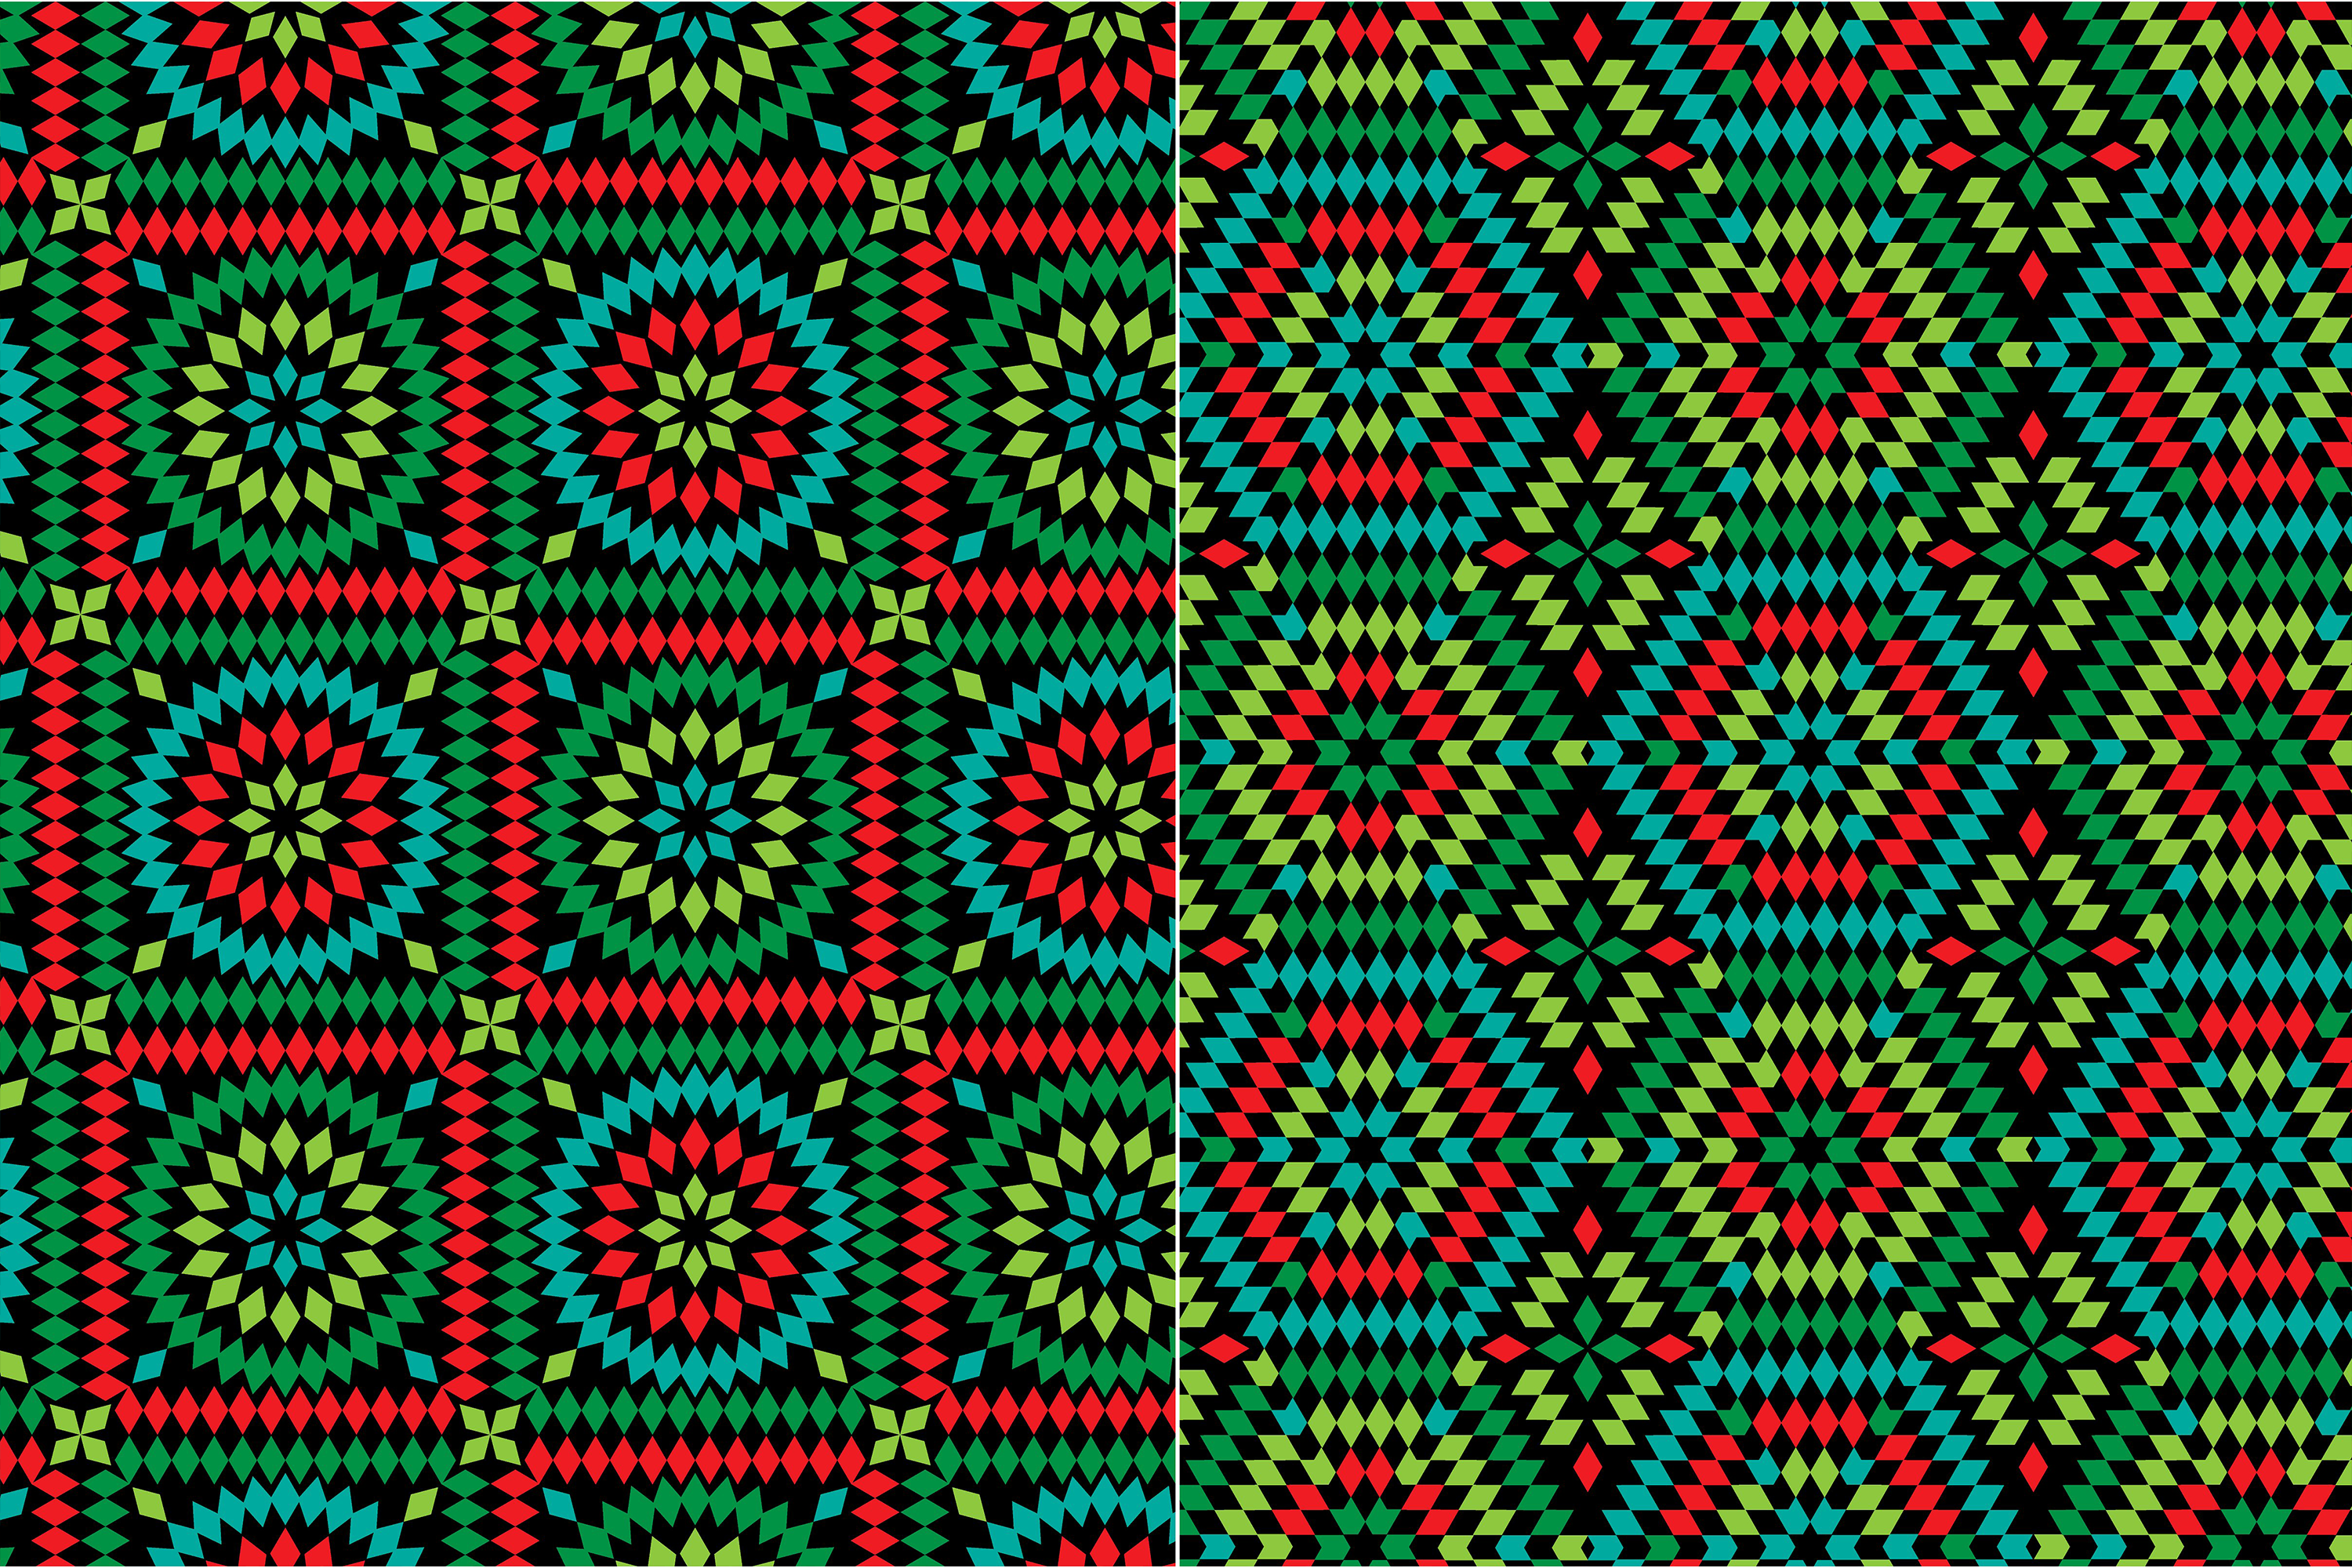 Granny Square Patterns on Black example image 4